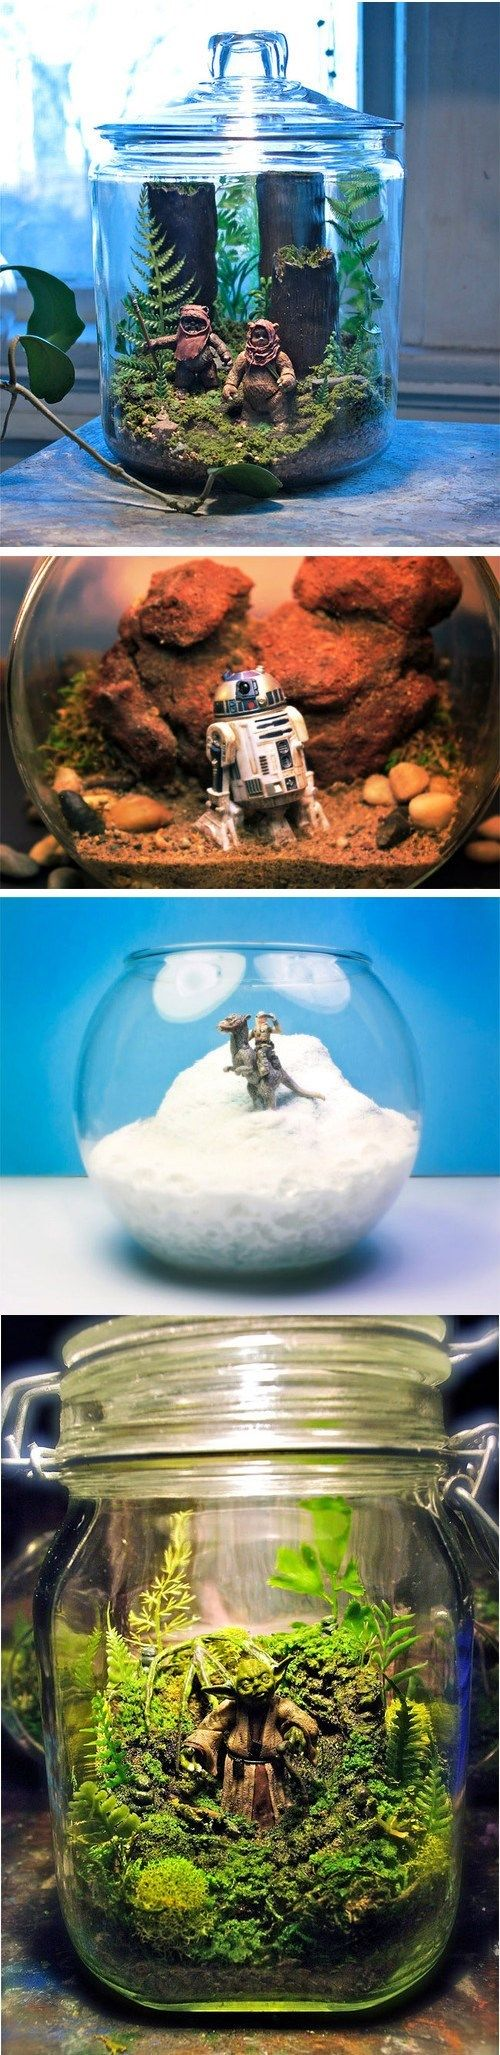 The DIY should be pretty self explanatory, but here are some links to items you can buy to fill up you terrarium. Star Wars, Aquarium Shrubs,terrarium accessories Sauce: [StarWars]